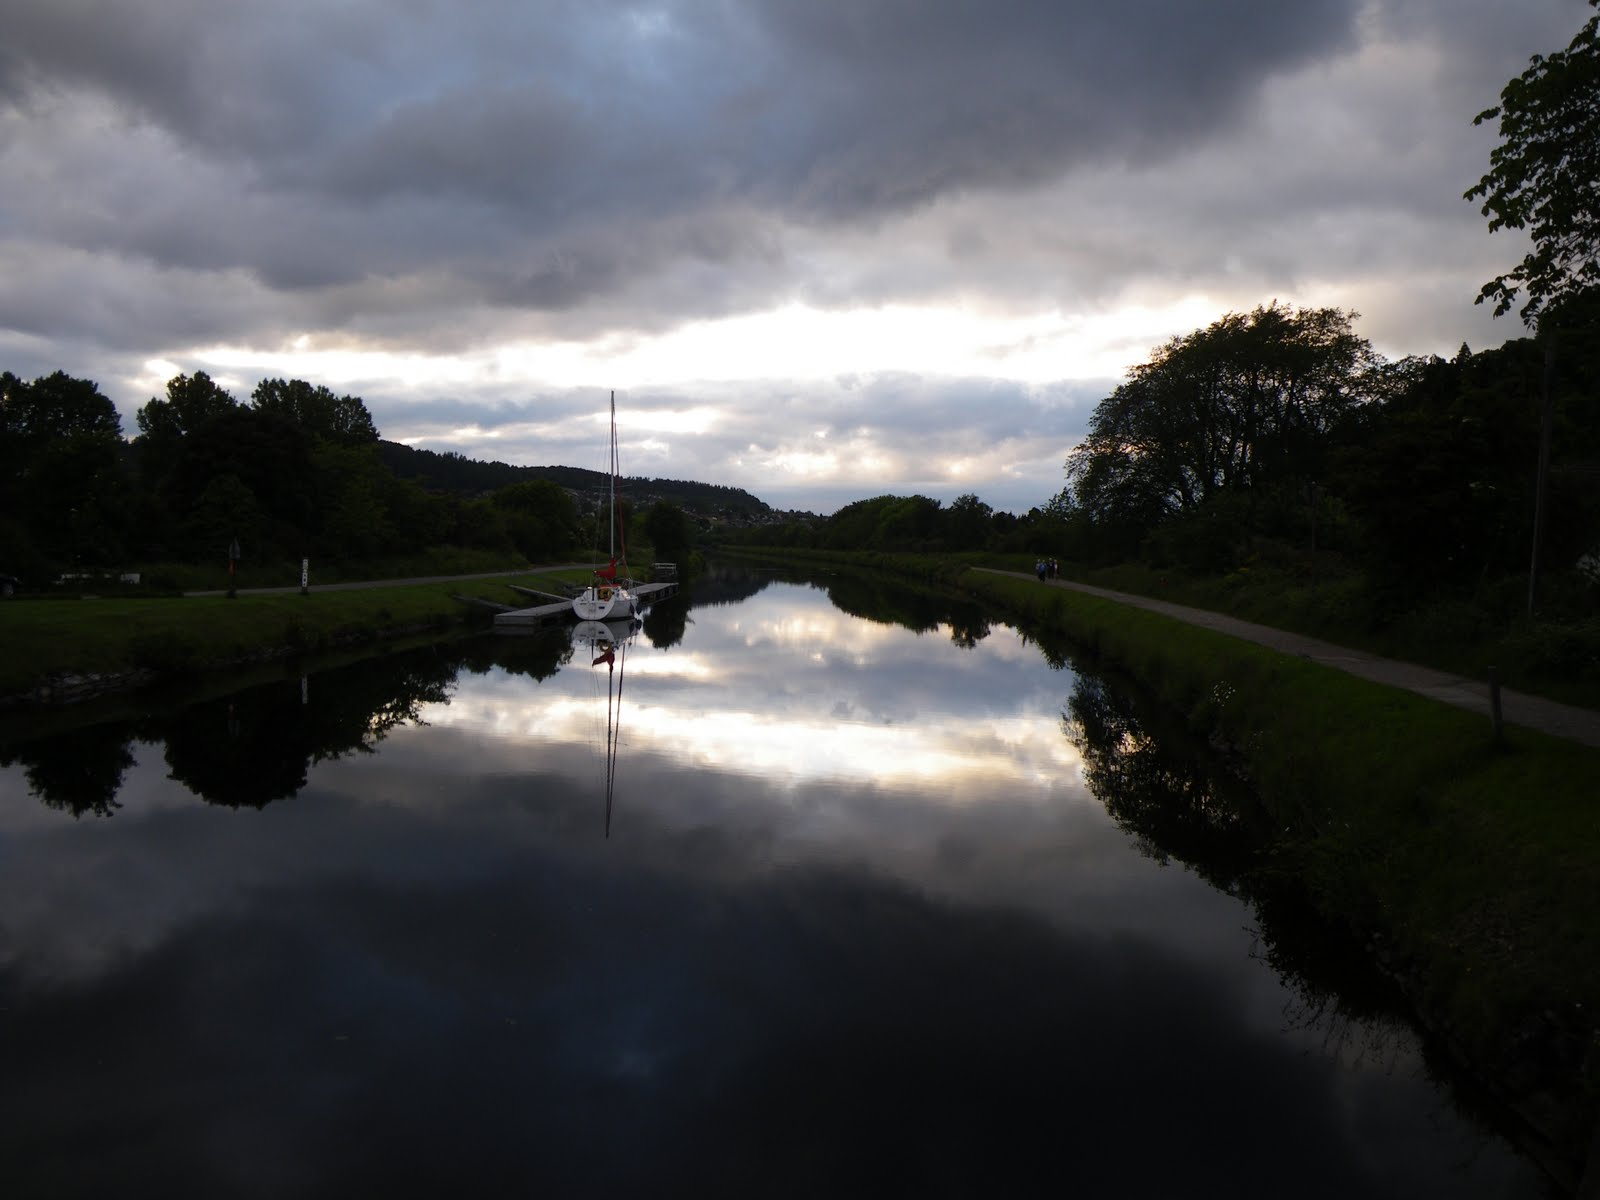 A mirror river just outside Inverness Where: Inverness, Scotland